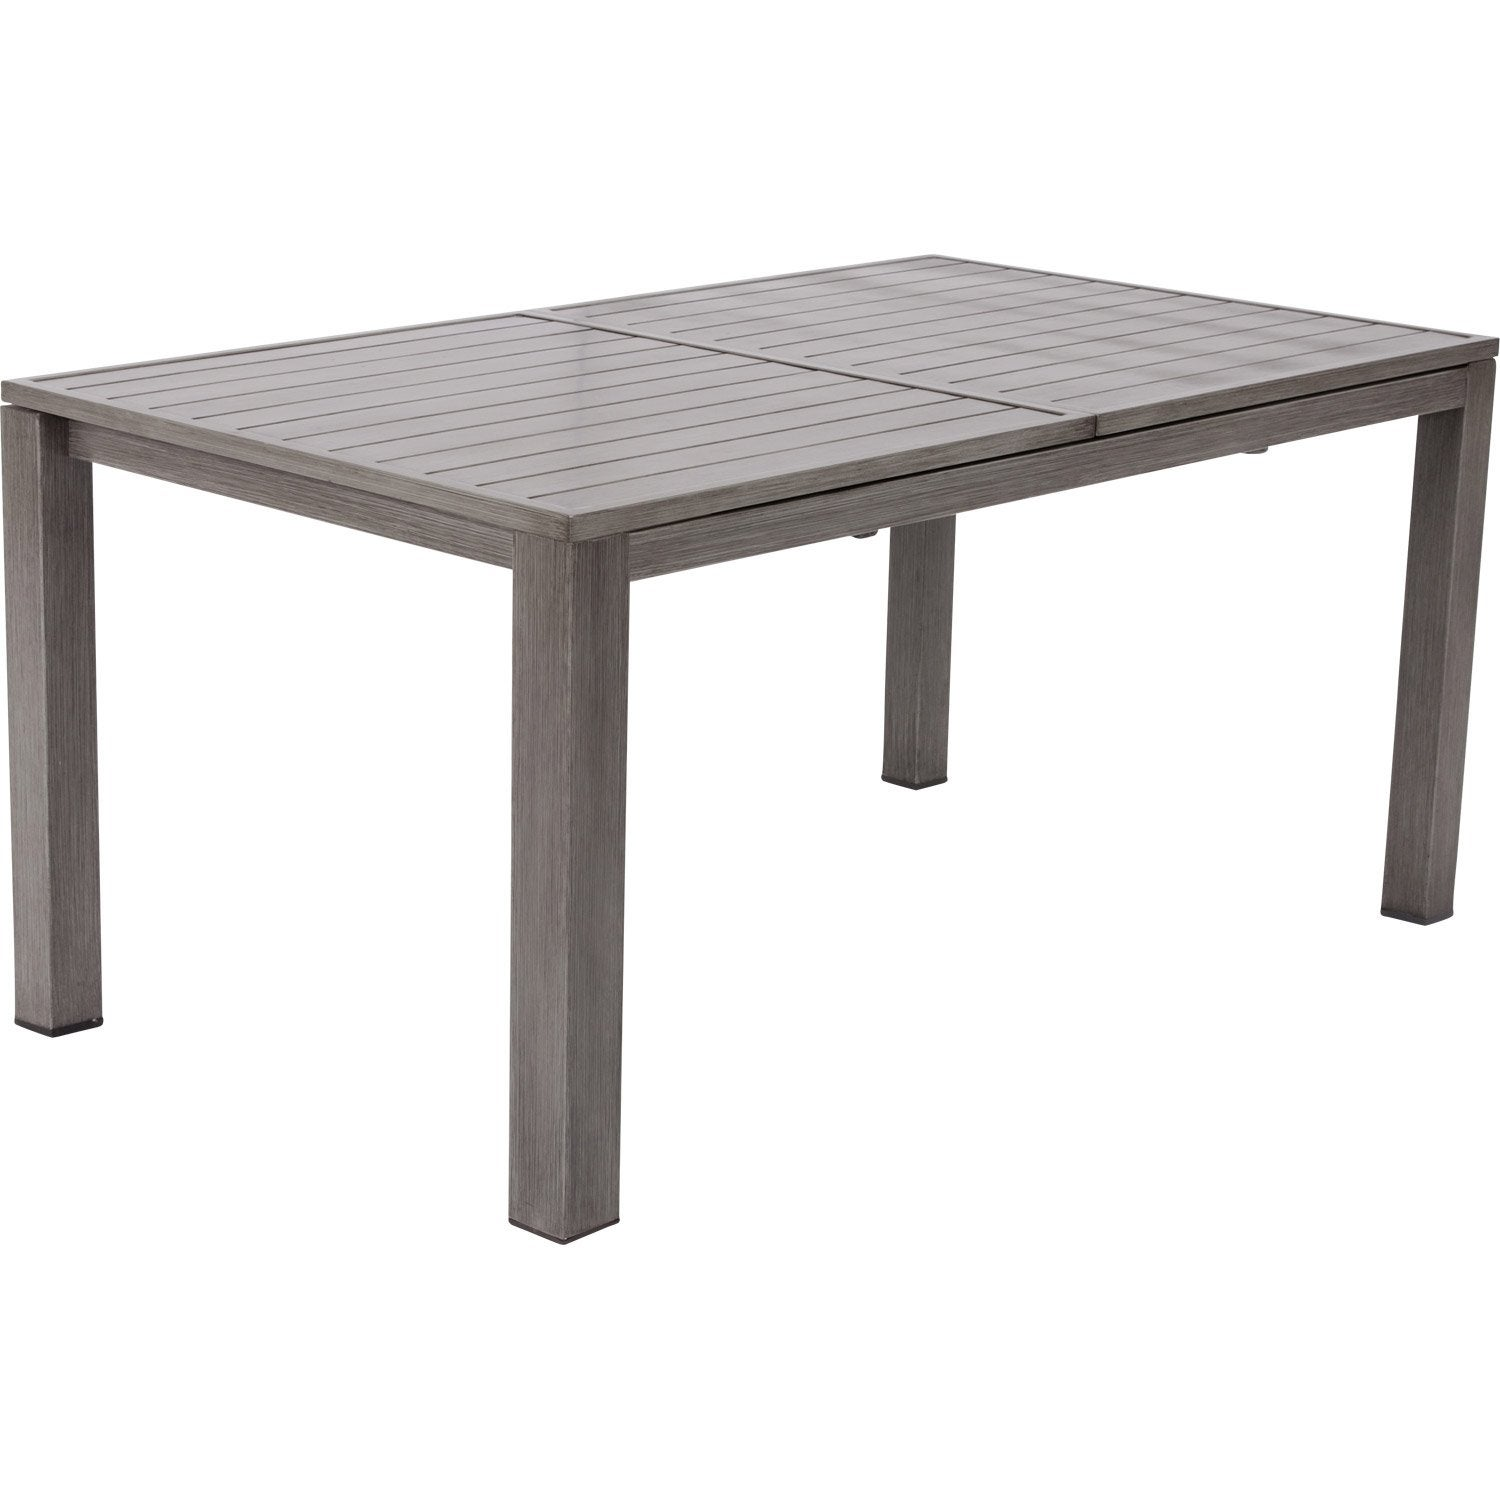 Table de jardin naterial antibes rectangulaire gris look - Table jardin en bois ...